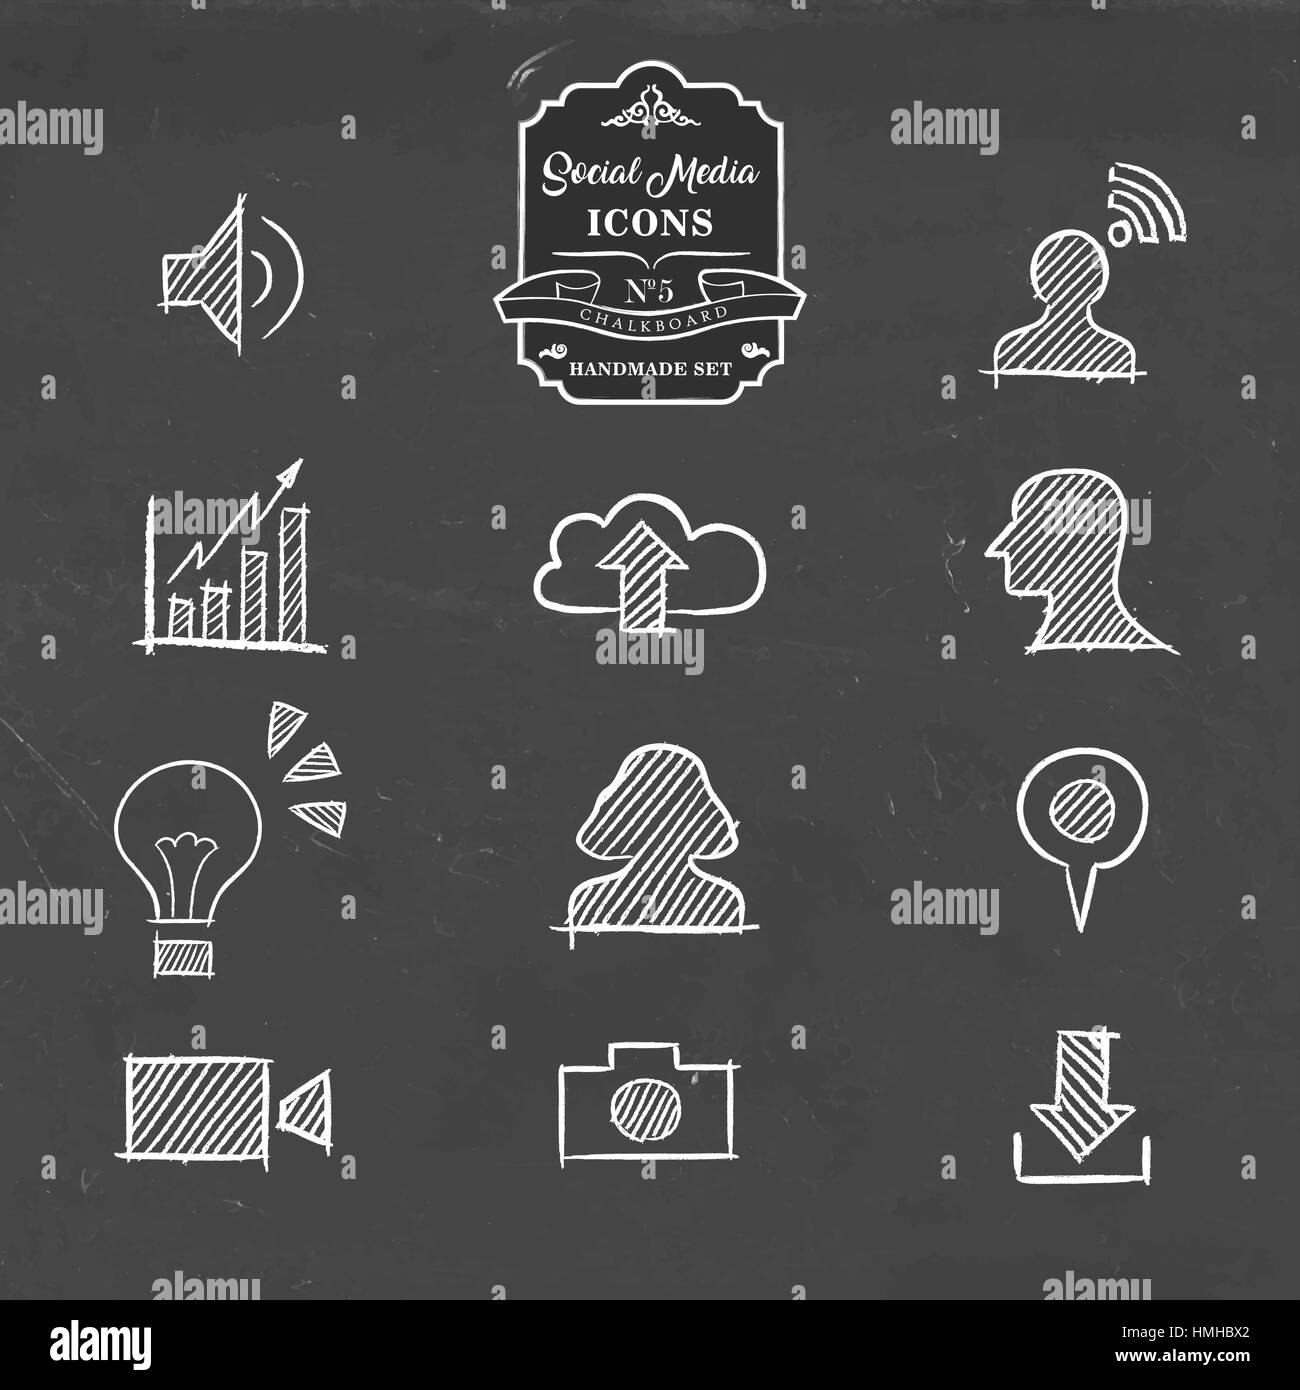 Social Media Hand Drawn Chalkboard Icon Collection, Set Of Online  Networking Symbols. Includes Photo, Download, Video Camera, Cloud Storage  And More.